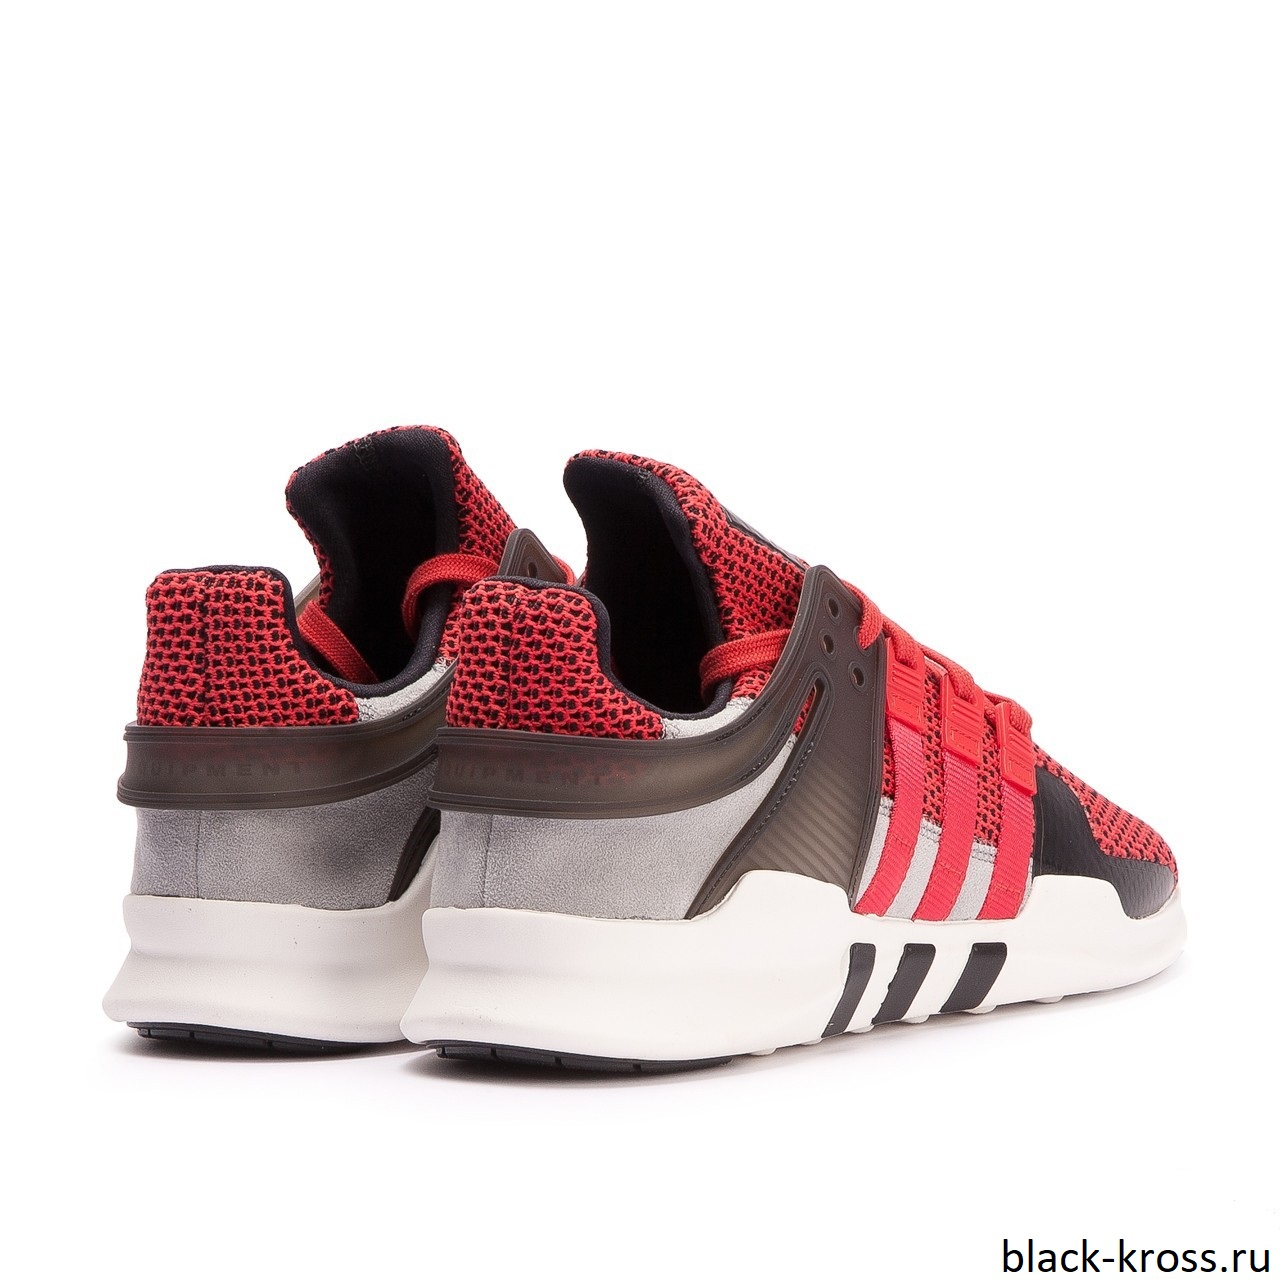 adidas-equipment-support-adv-red-black-5